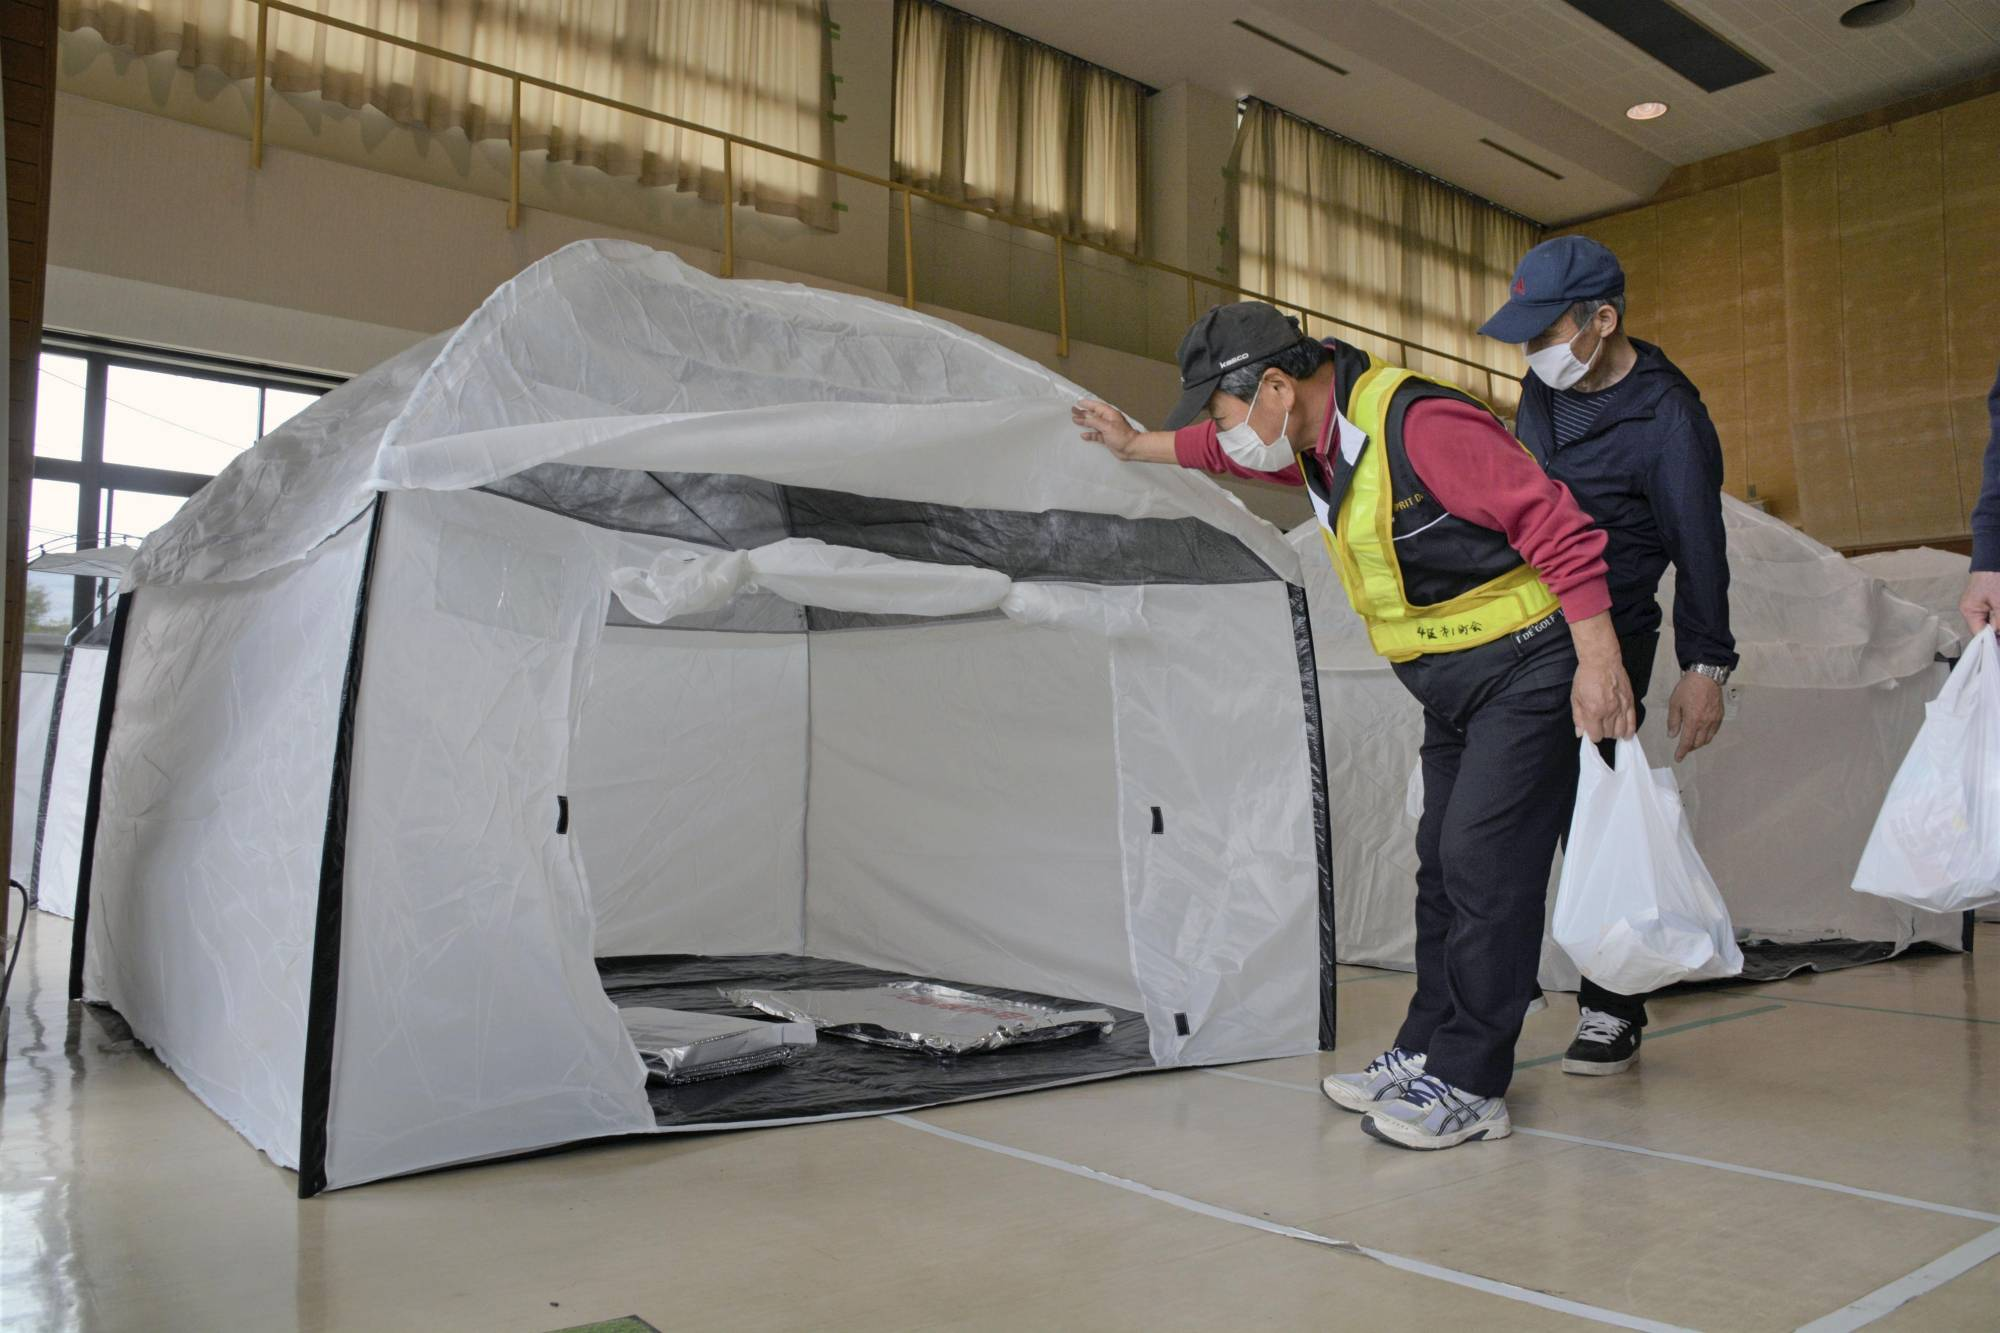 Tents are set up at an evacuation center used for a disaster drill held on May 16 in the city of Fukushima with considerations over prevention of COVID-19 infections spreading. | KYODO